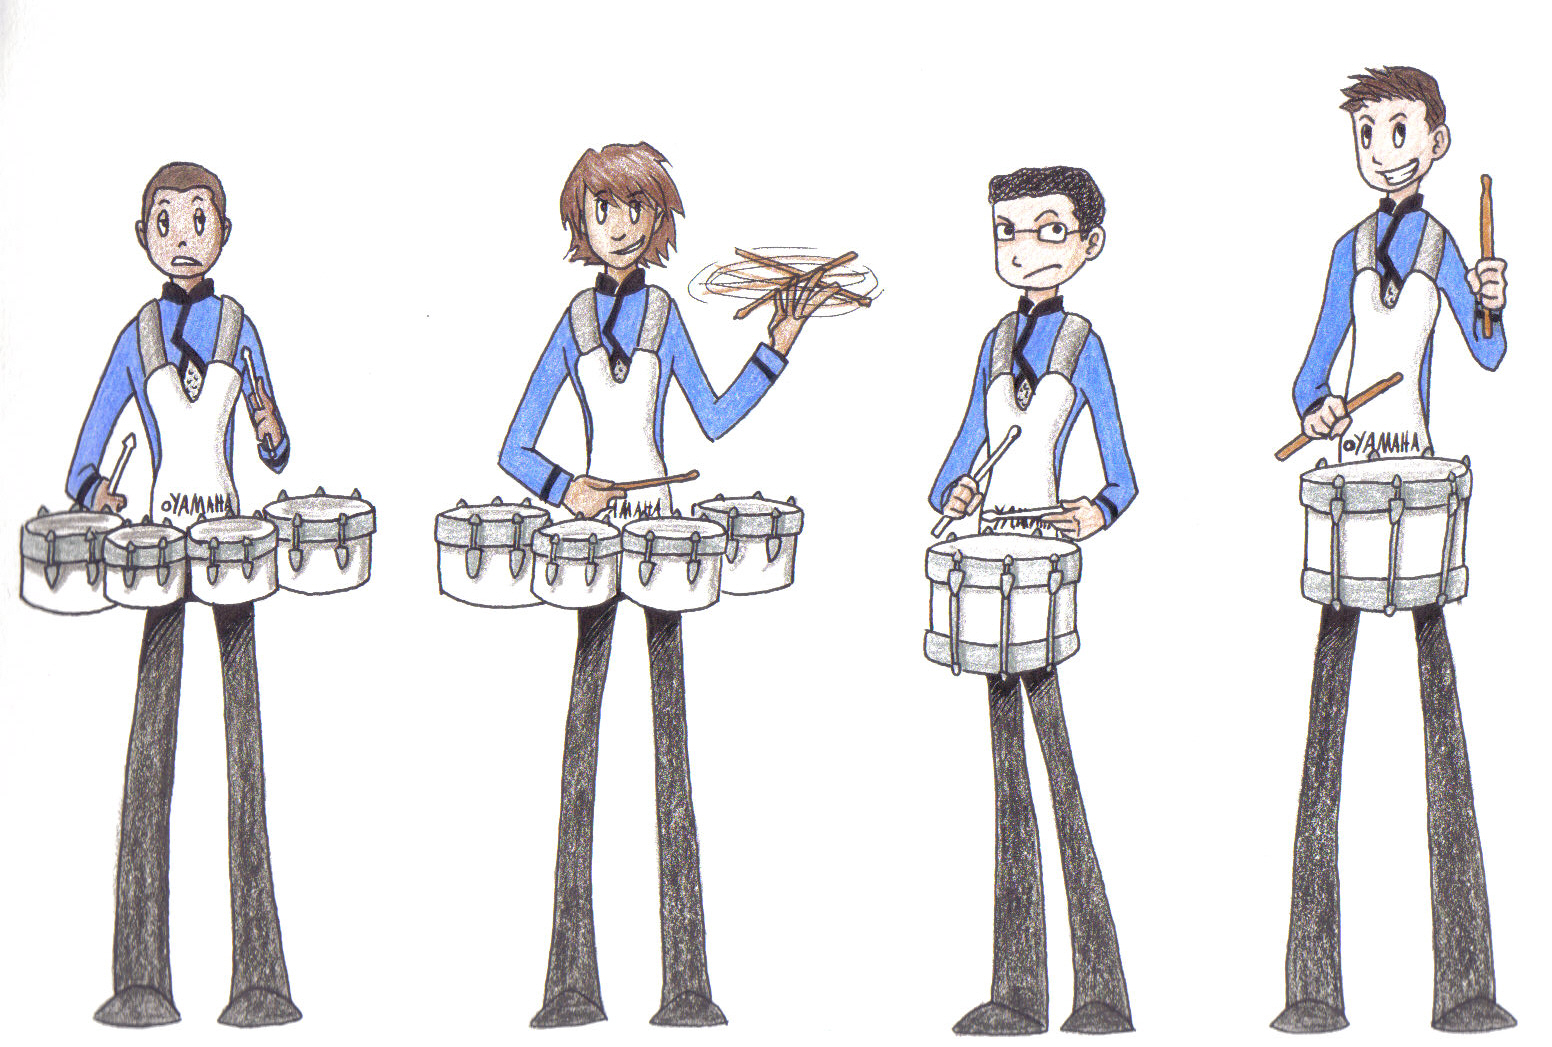 Drumline redux by heavensong on DeviantArt